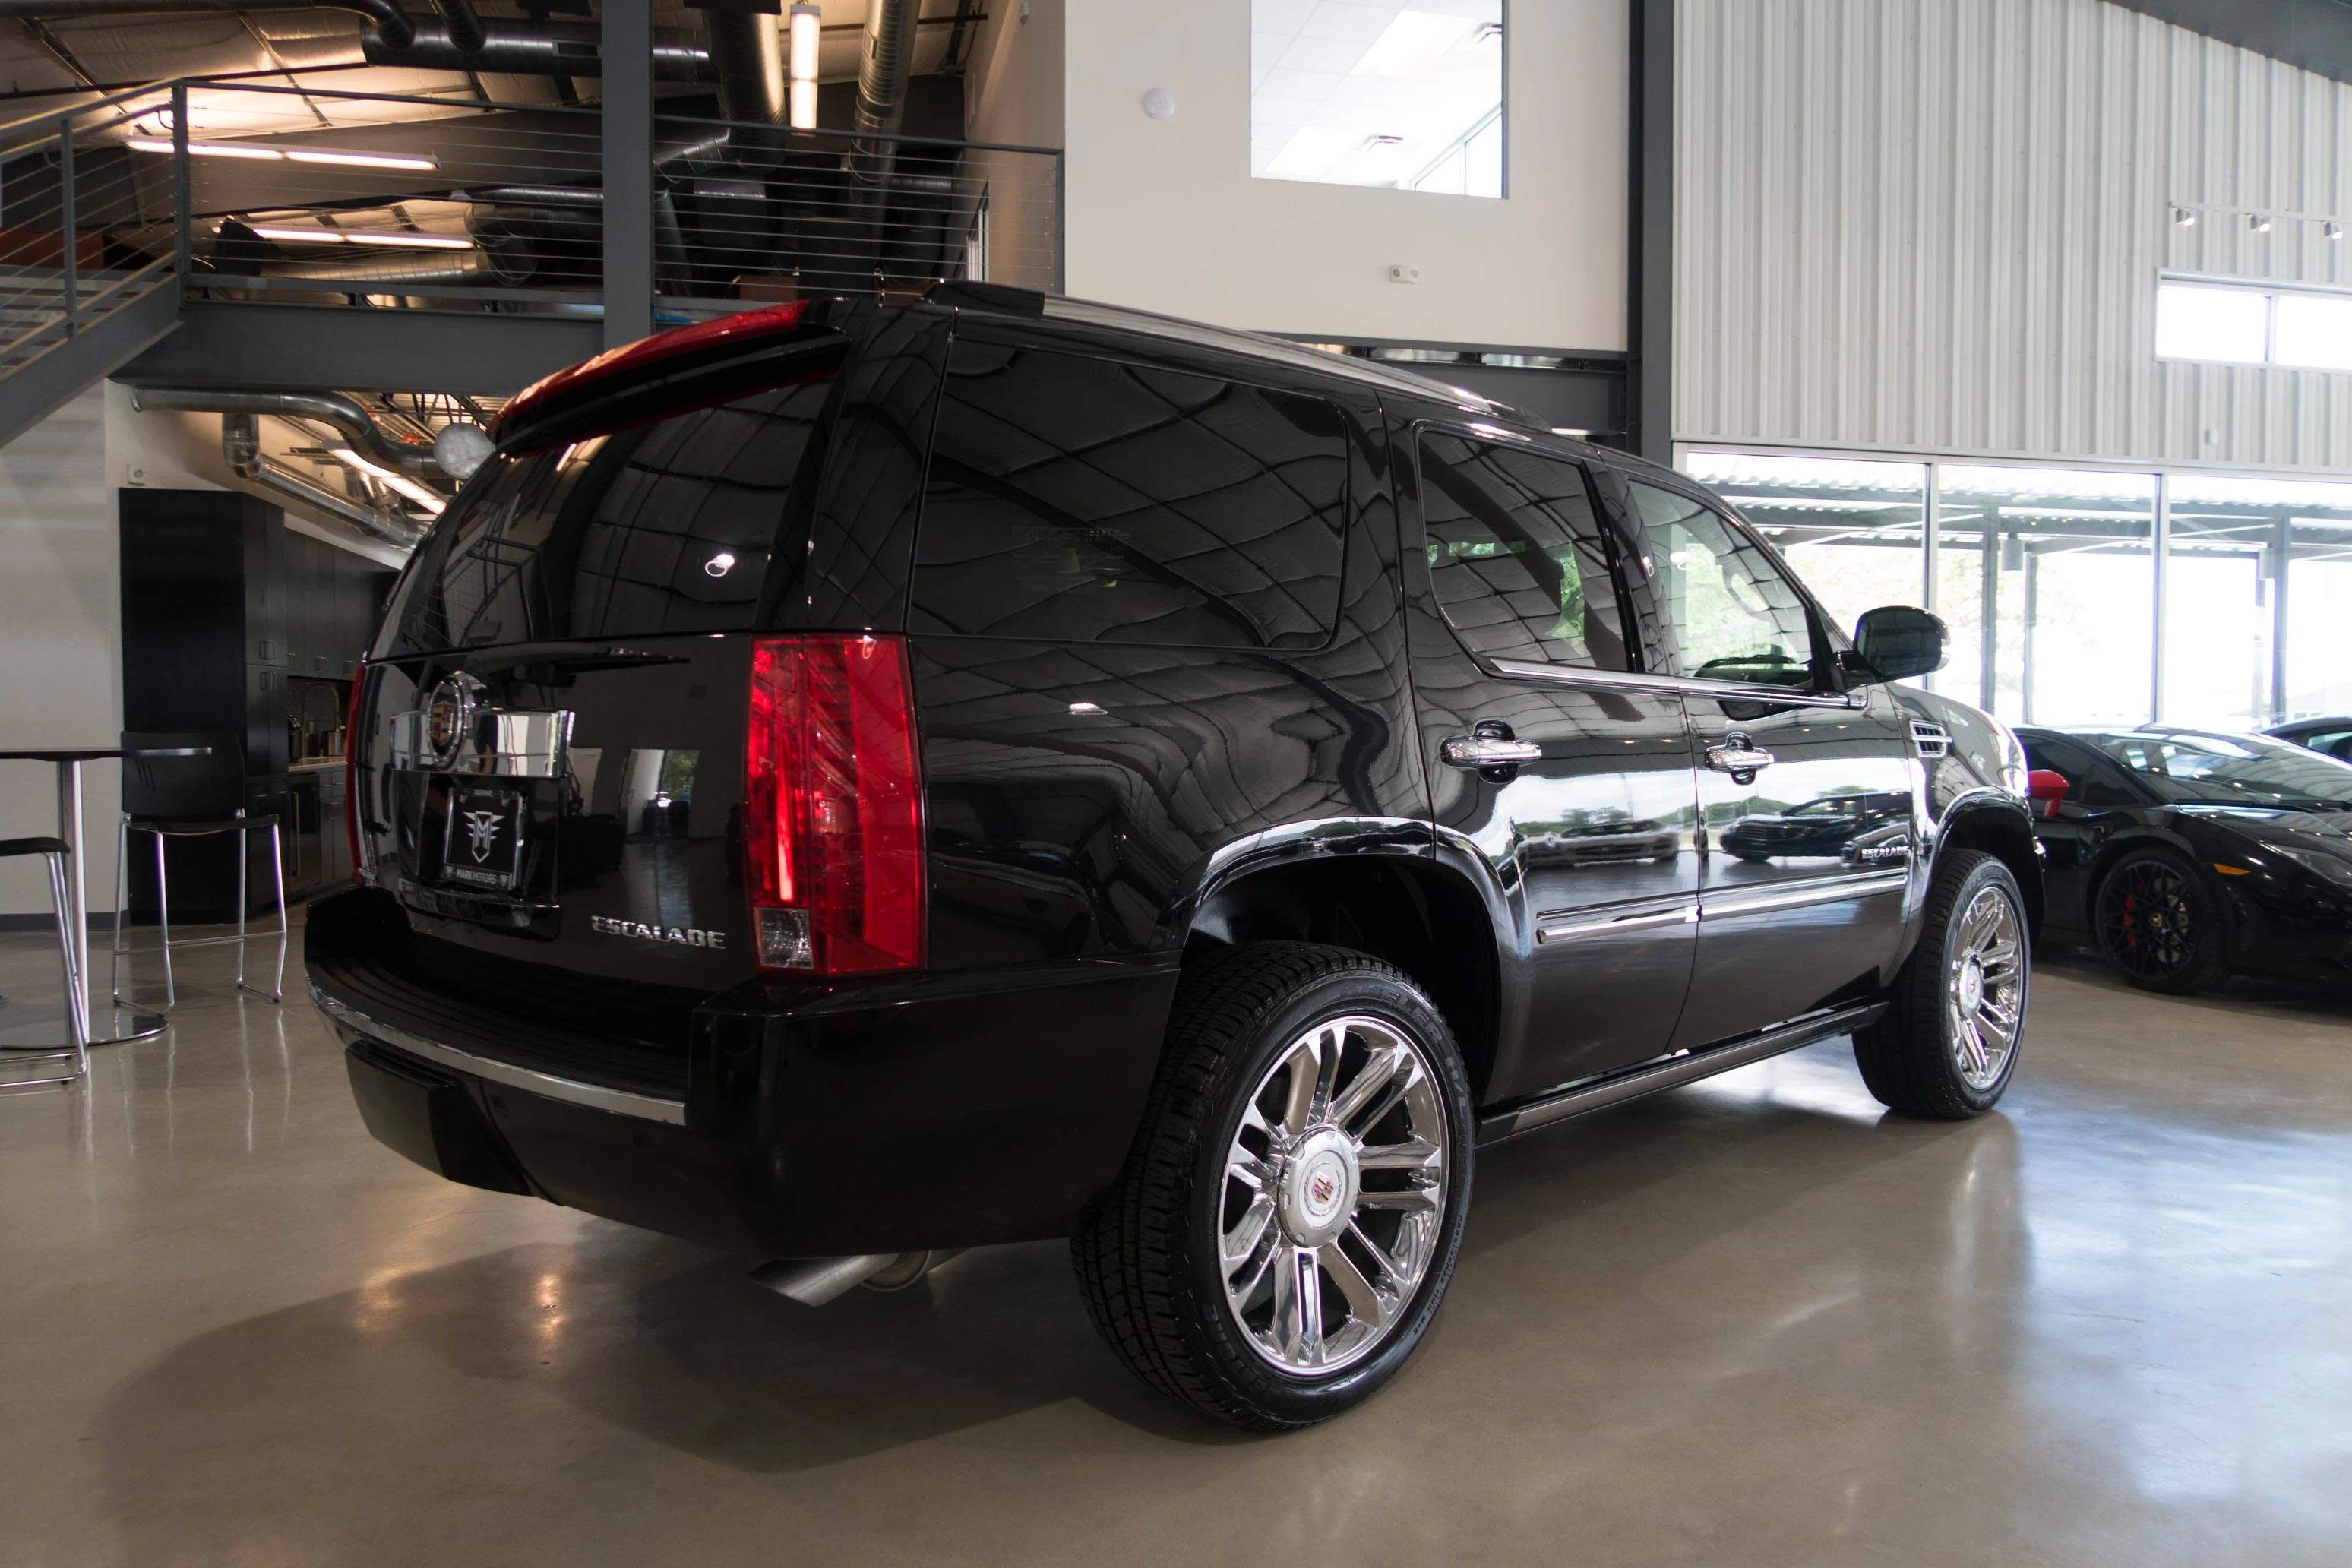 2015 cadillac escalade for sale in boerne tx 2015 cadillac escalade near me in boerne tx. Black Bedroom Furniture Sets. Home Design Ideas